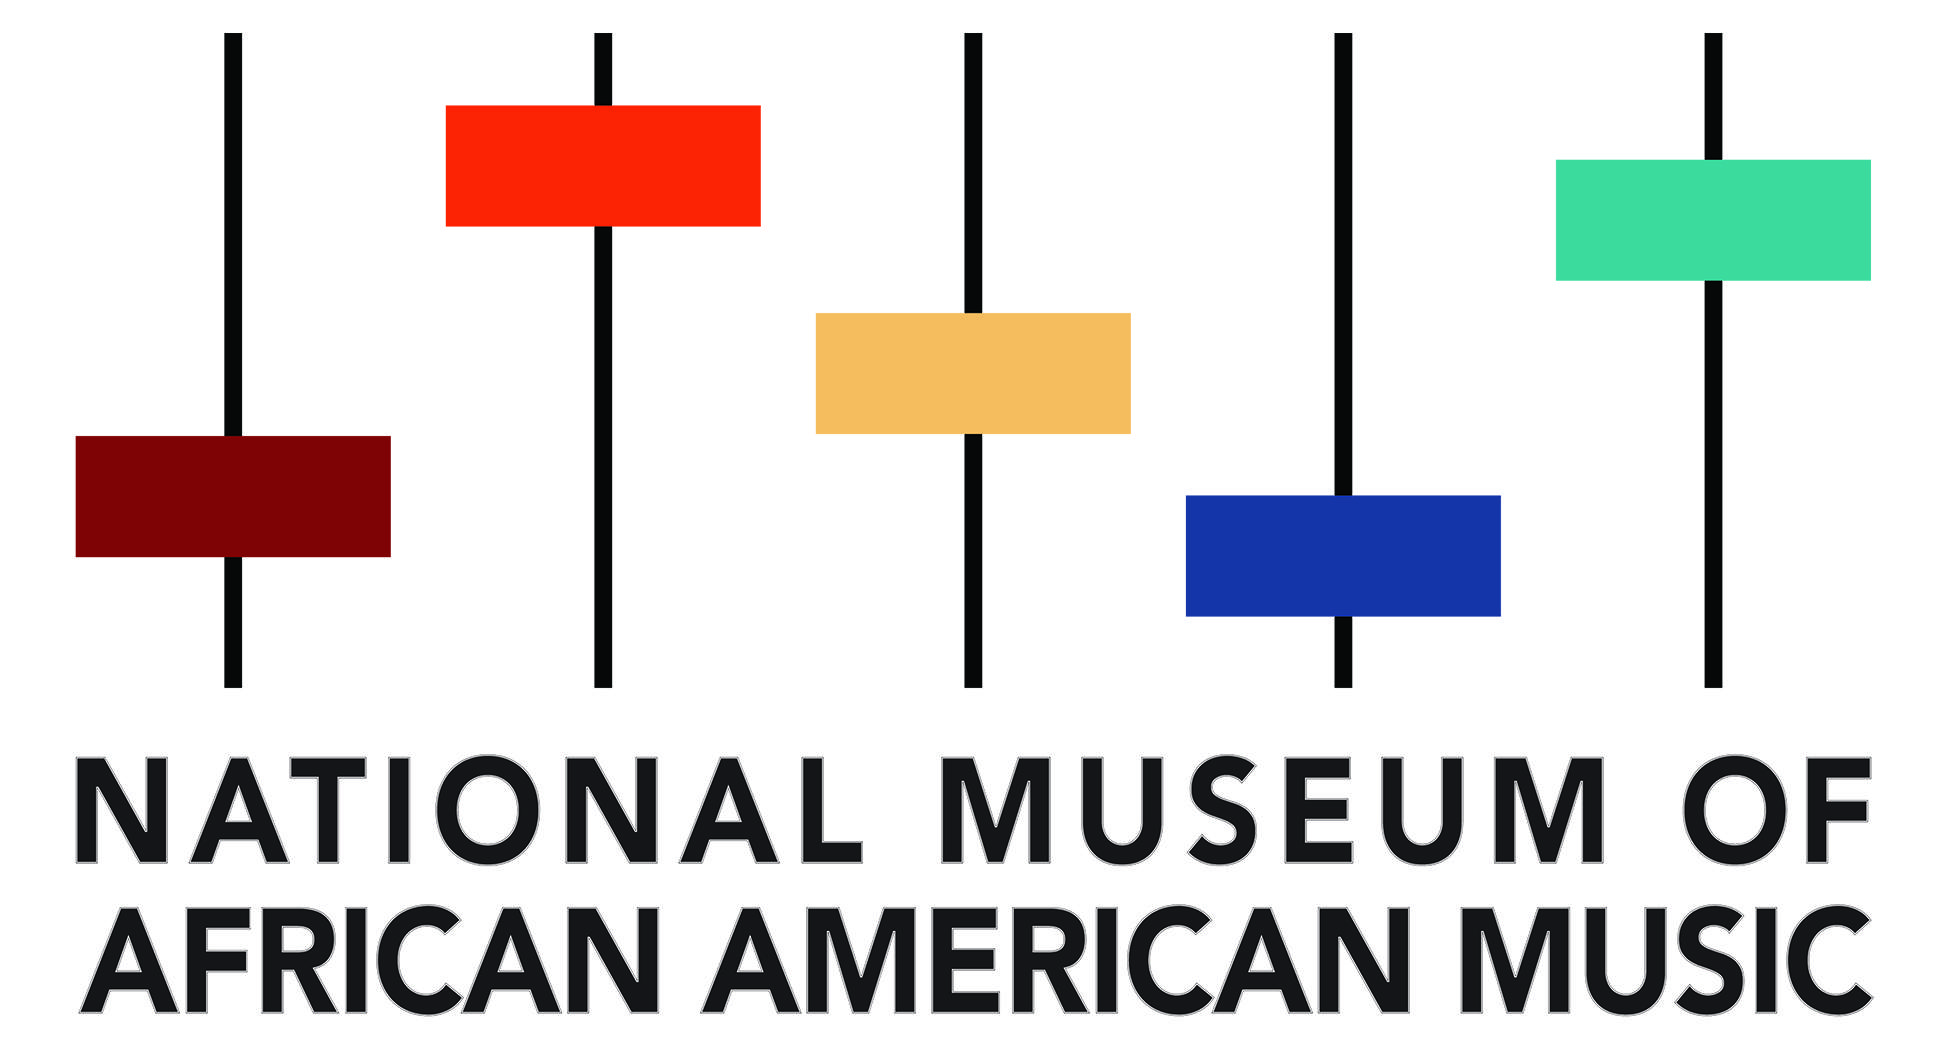 The National Museum of African American Music Begins Its